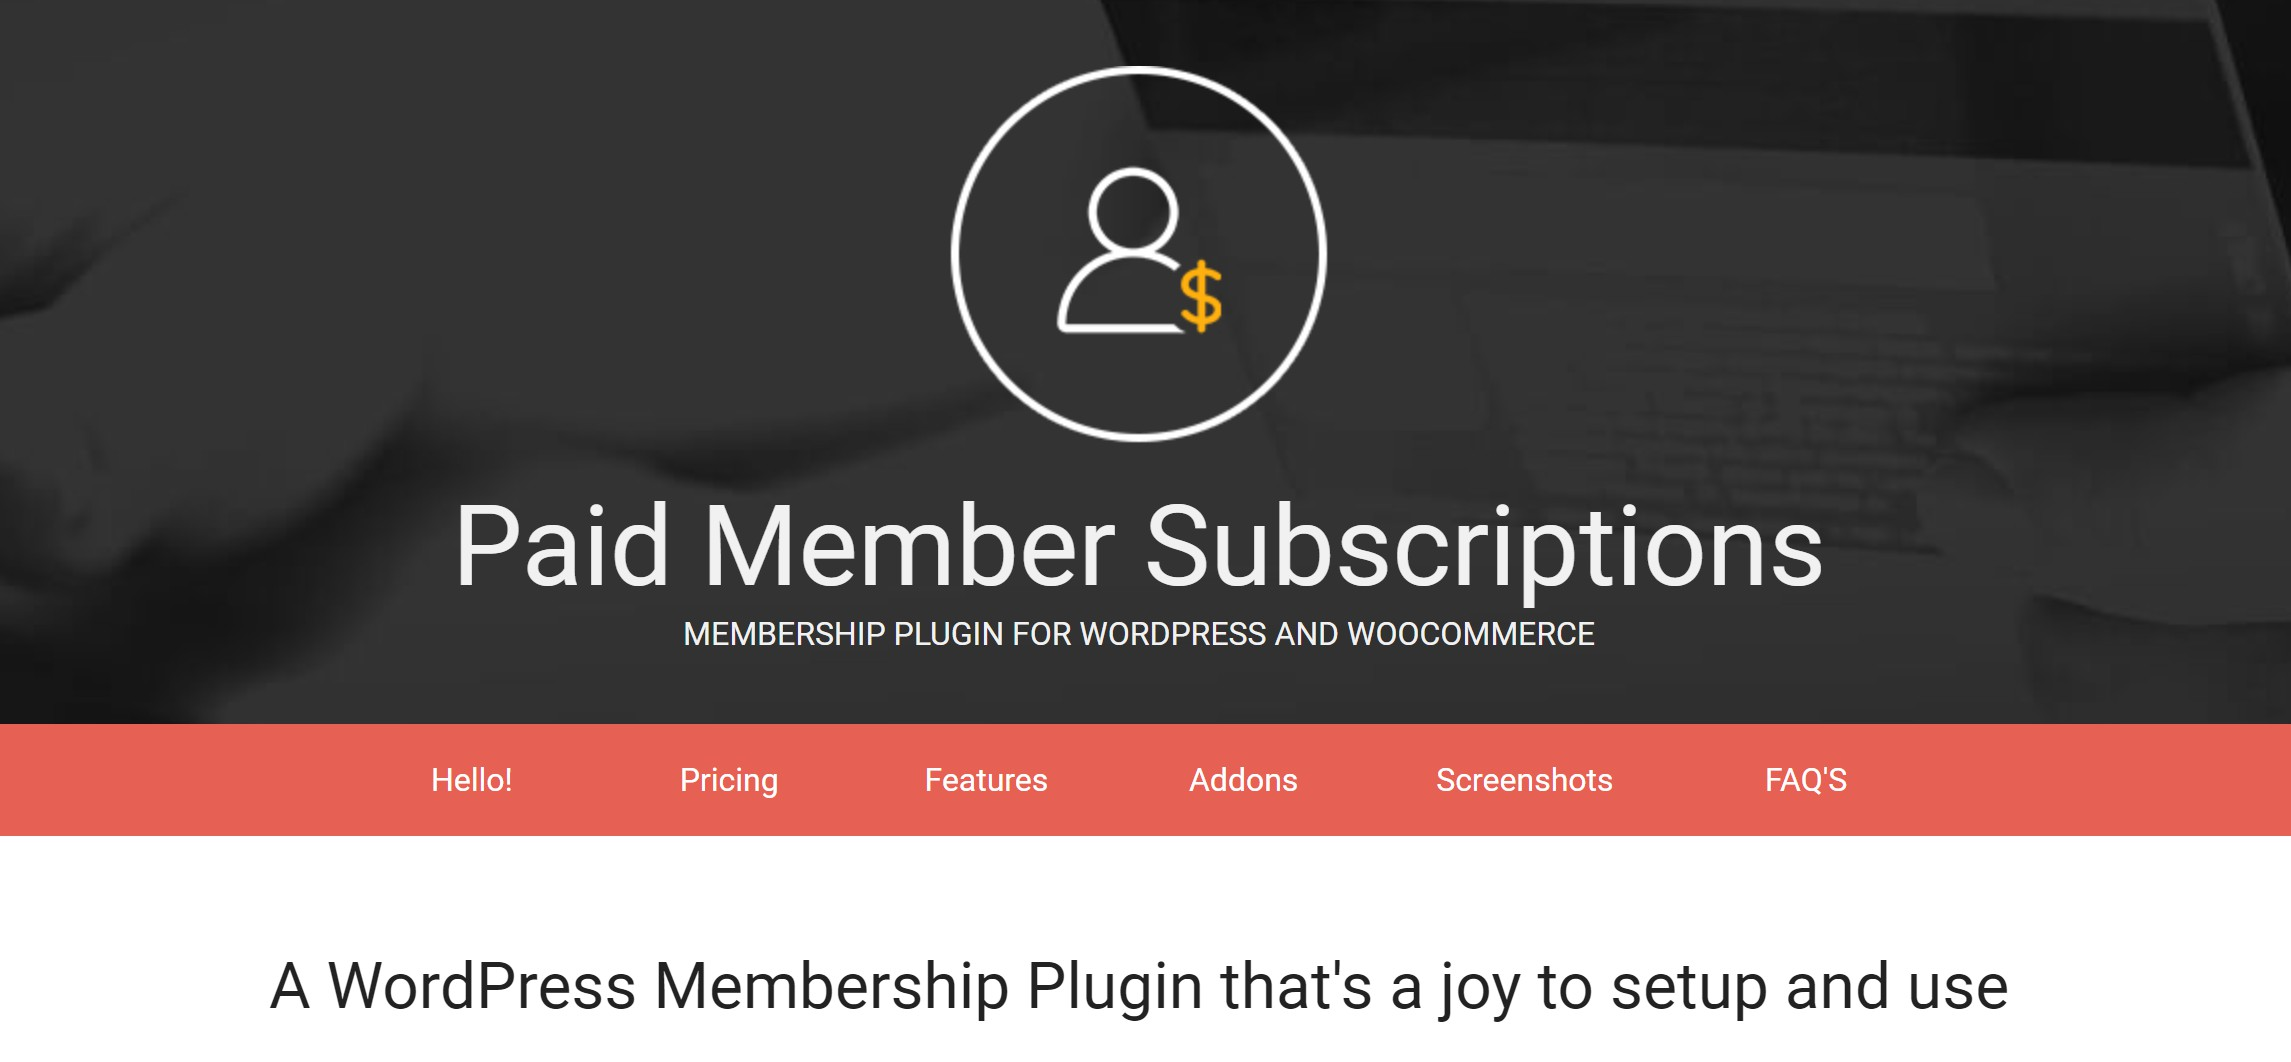 Paid Member Subscriptions might be the best WordPress membership plugin